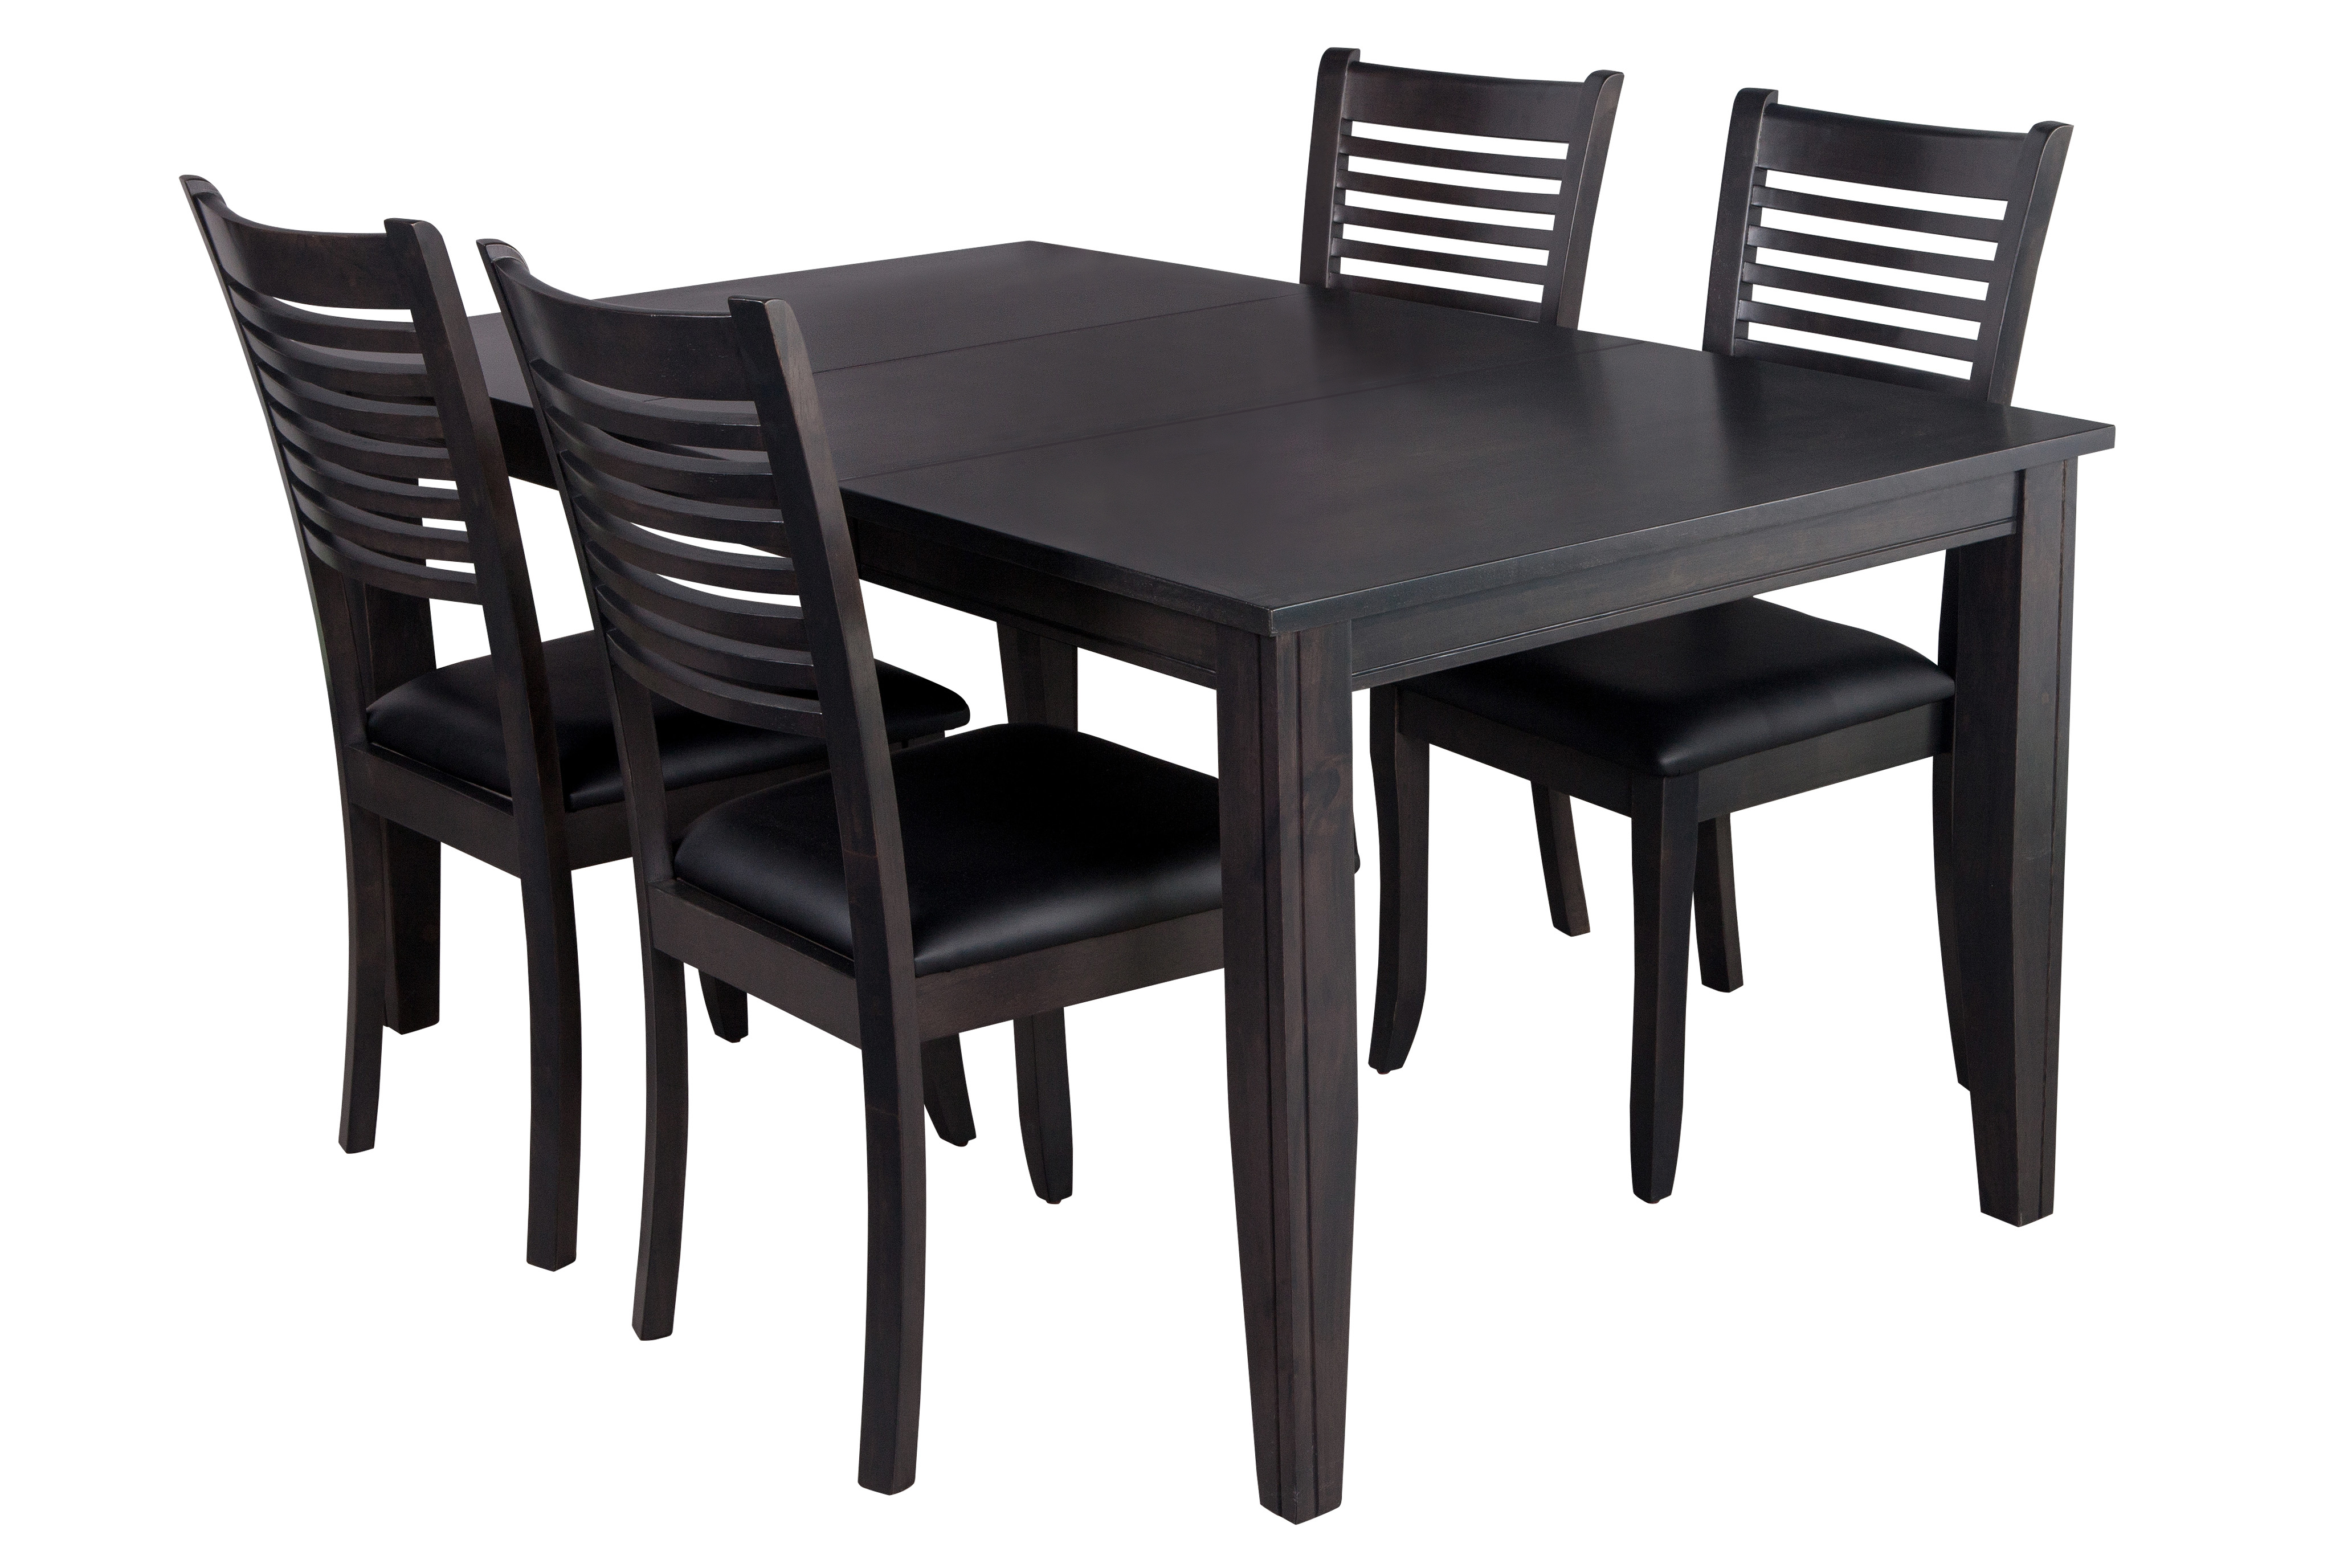 Famous Ttp Furnish Pertaining To Adan 5 Piece Solid Wood Dining Sets (Set Of 5) (View 7 of 25)